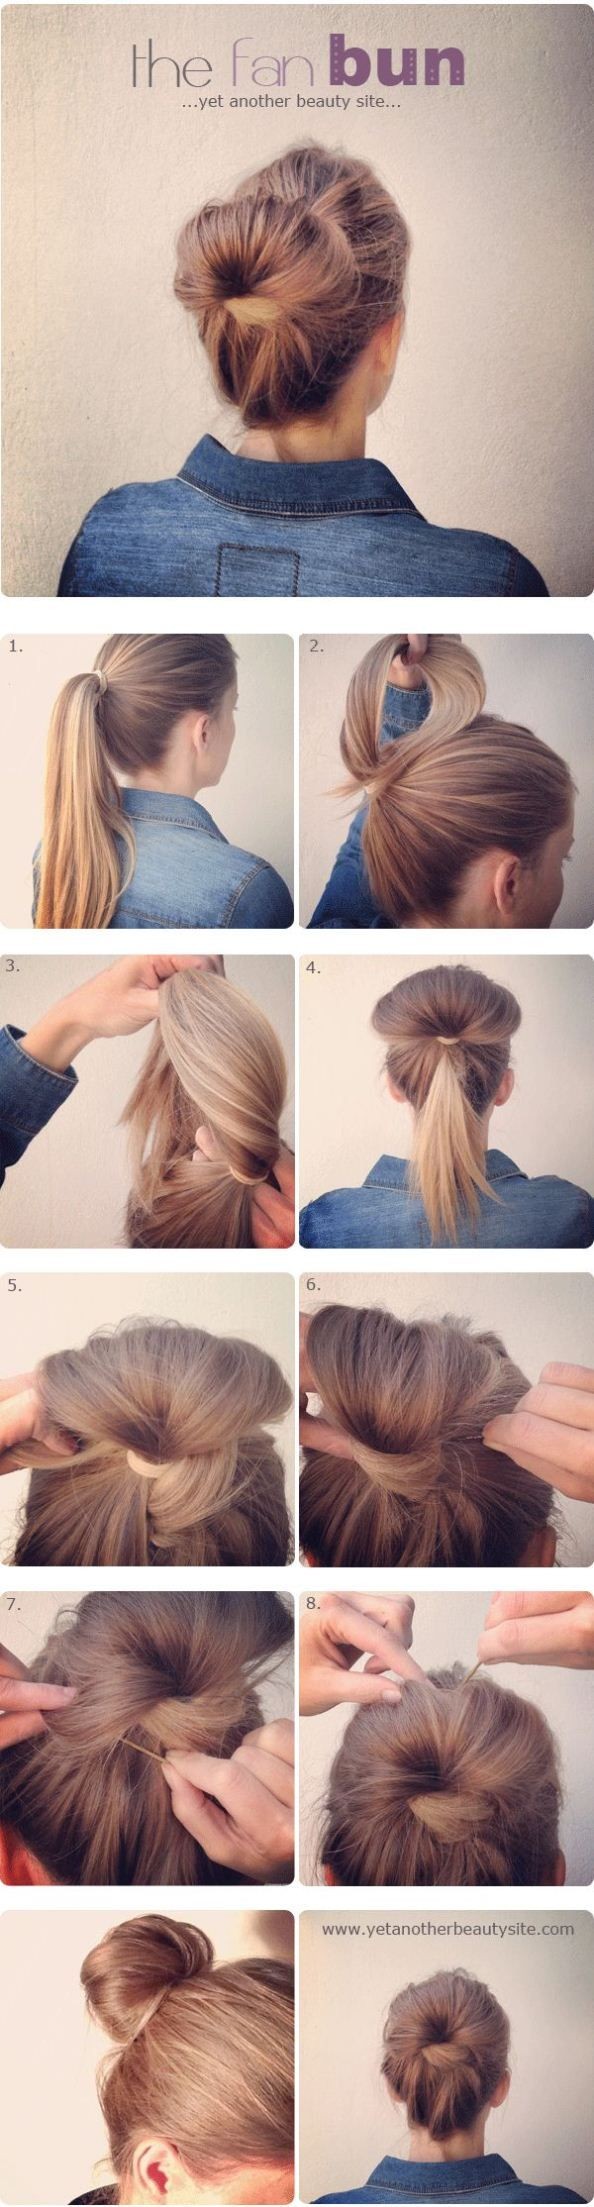 This looks super cute and easy to do!